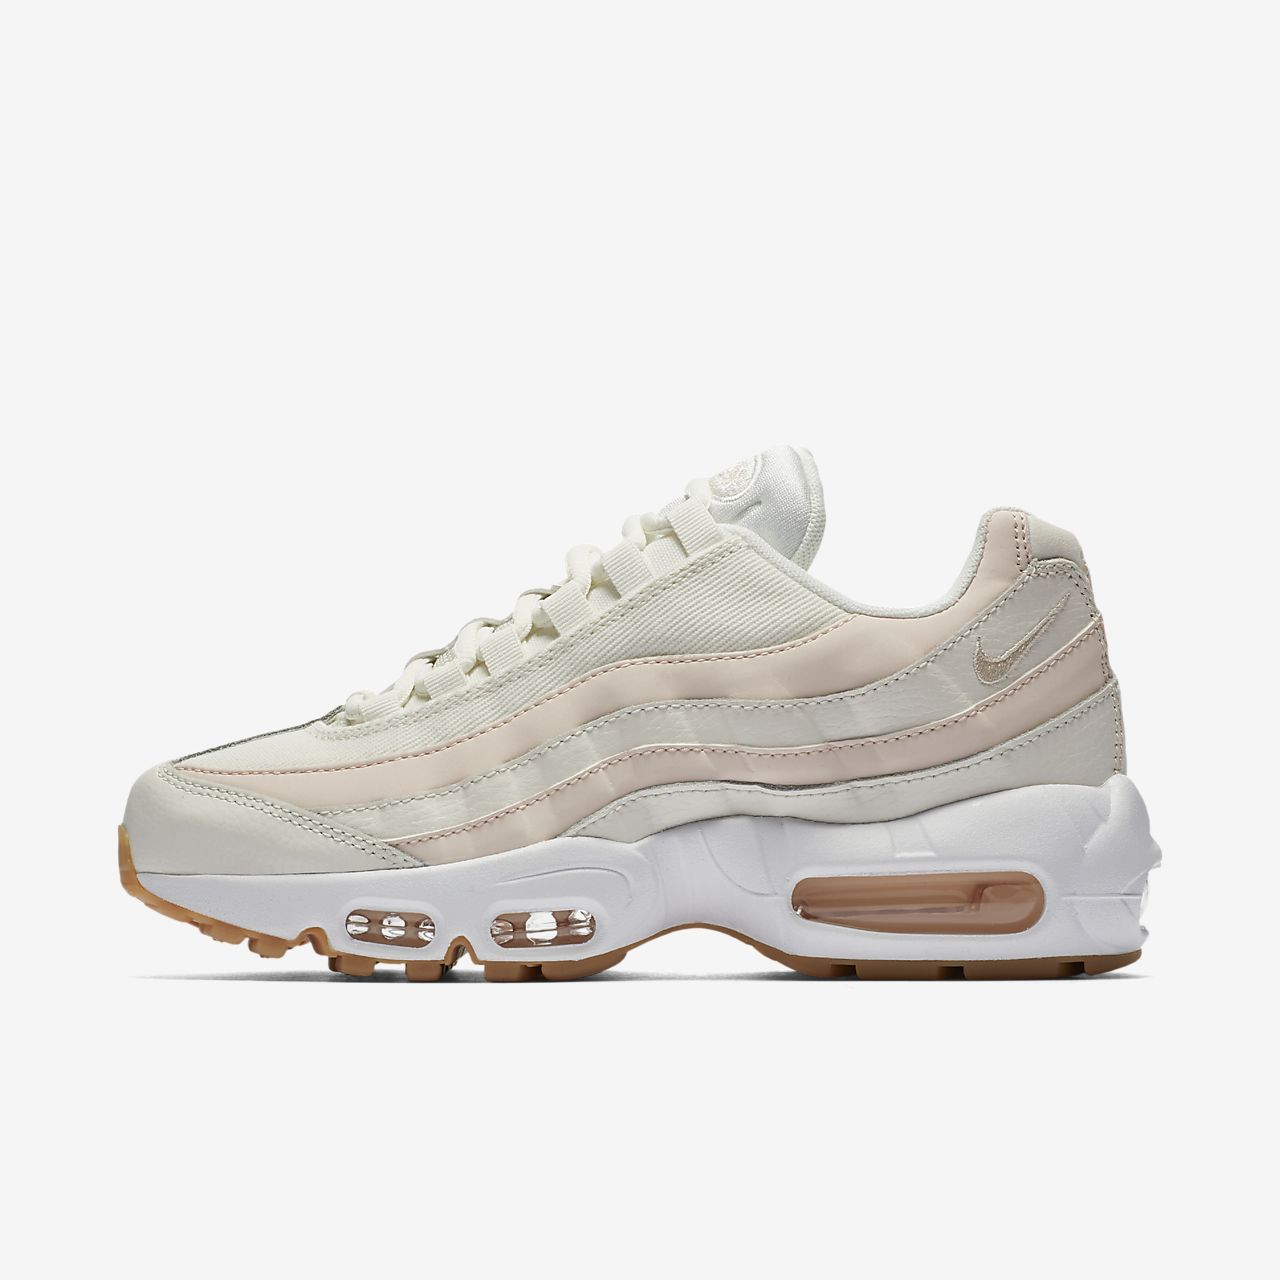 Nike Air Max 95 OG Women's Shoe